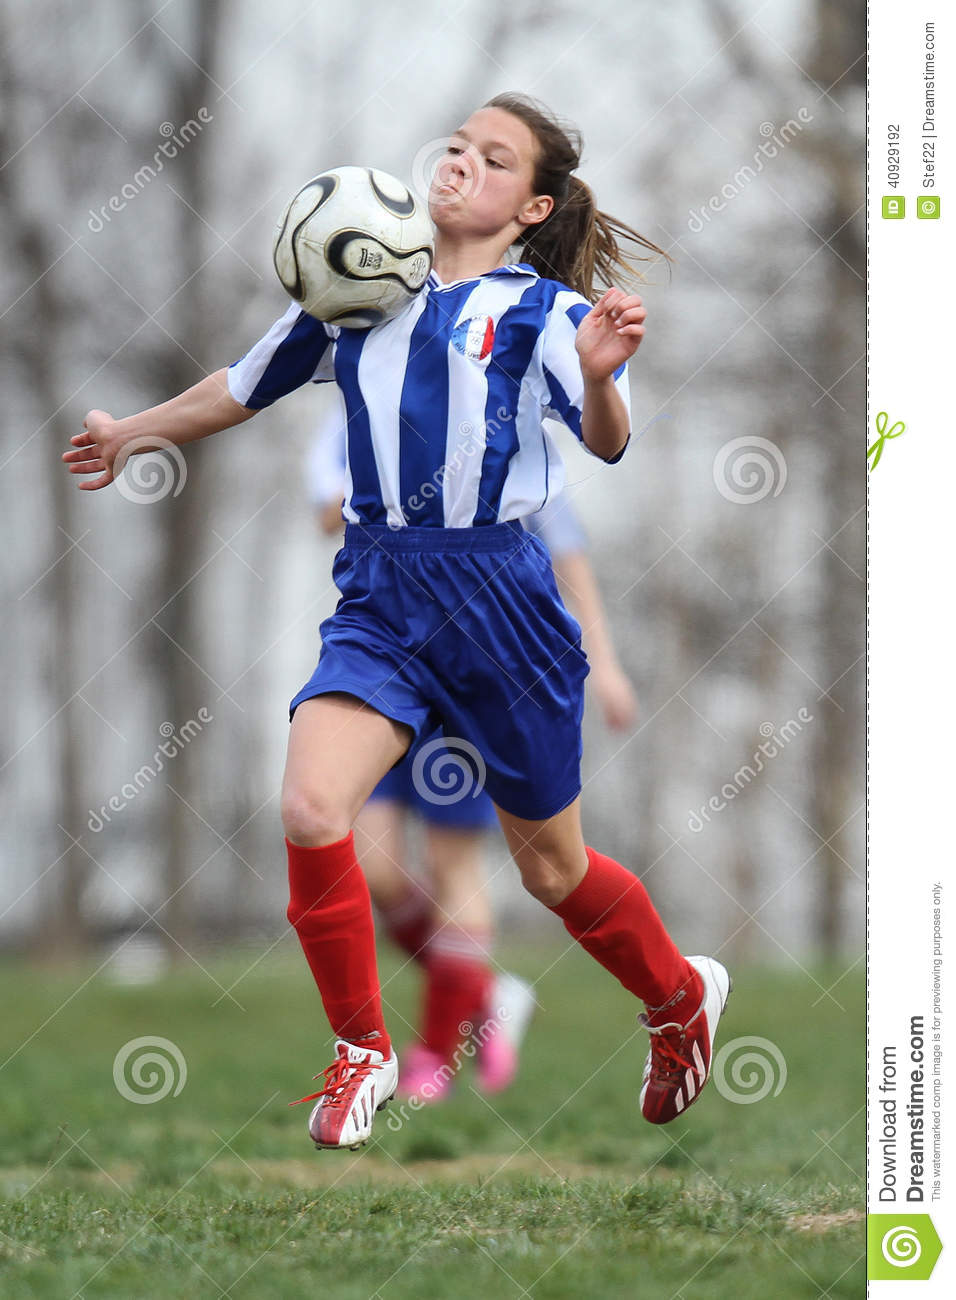 young female soccer player chest stop editorial book fair clipart book fair clipart free